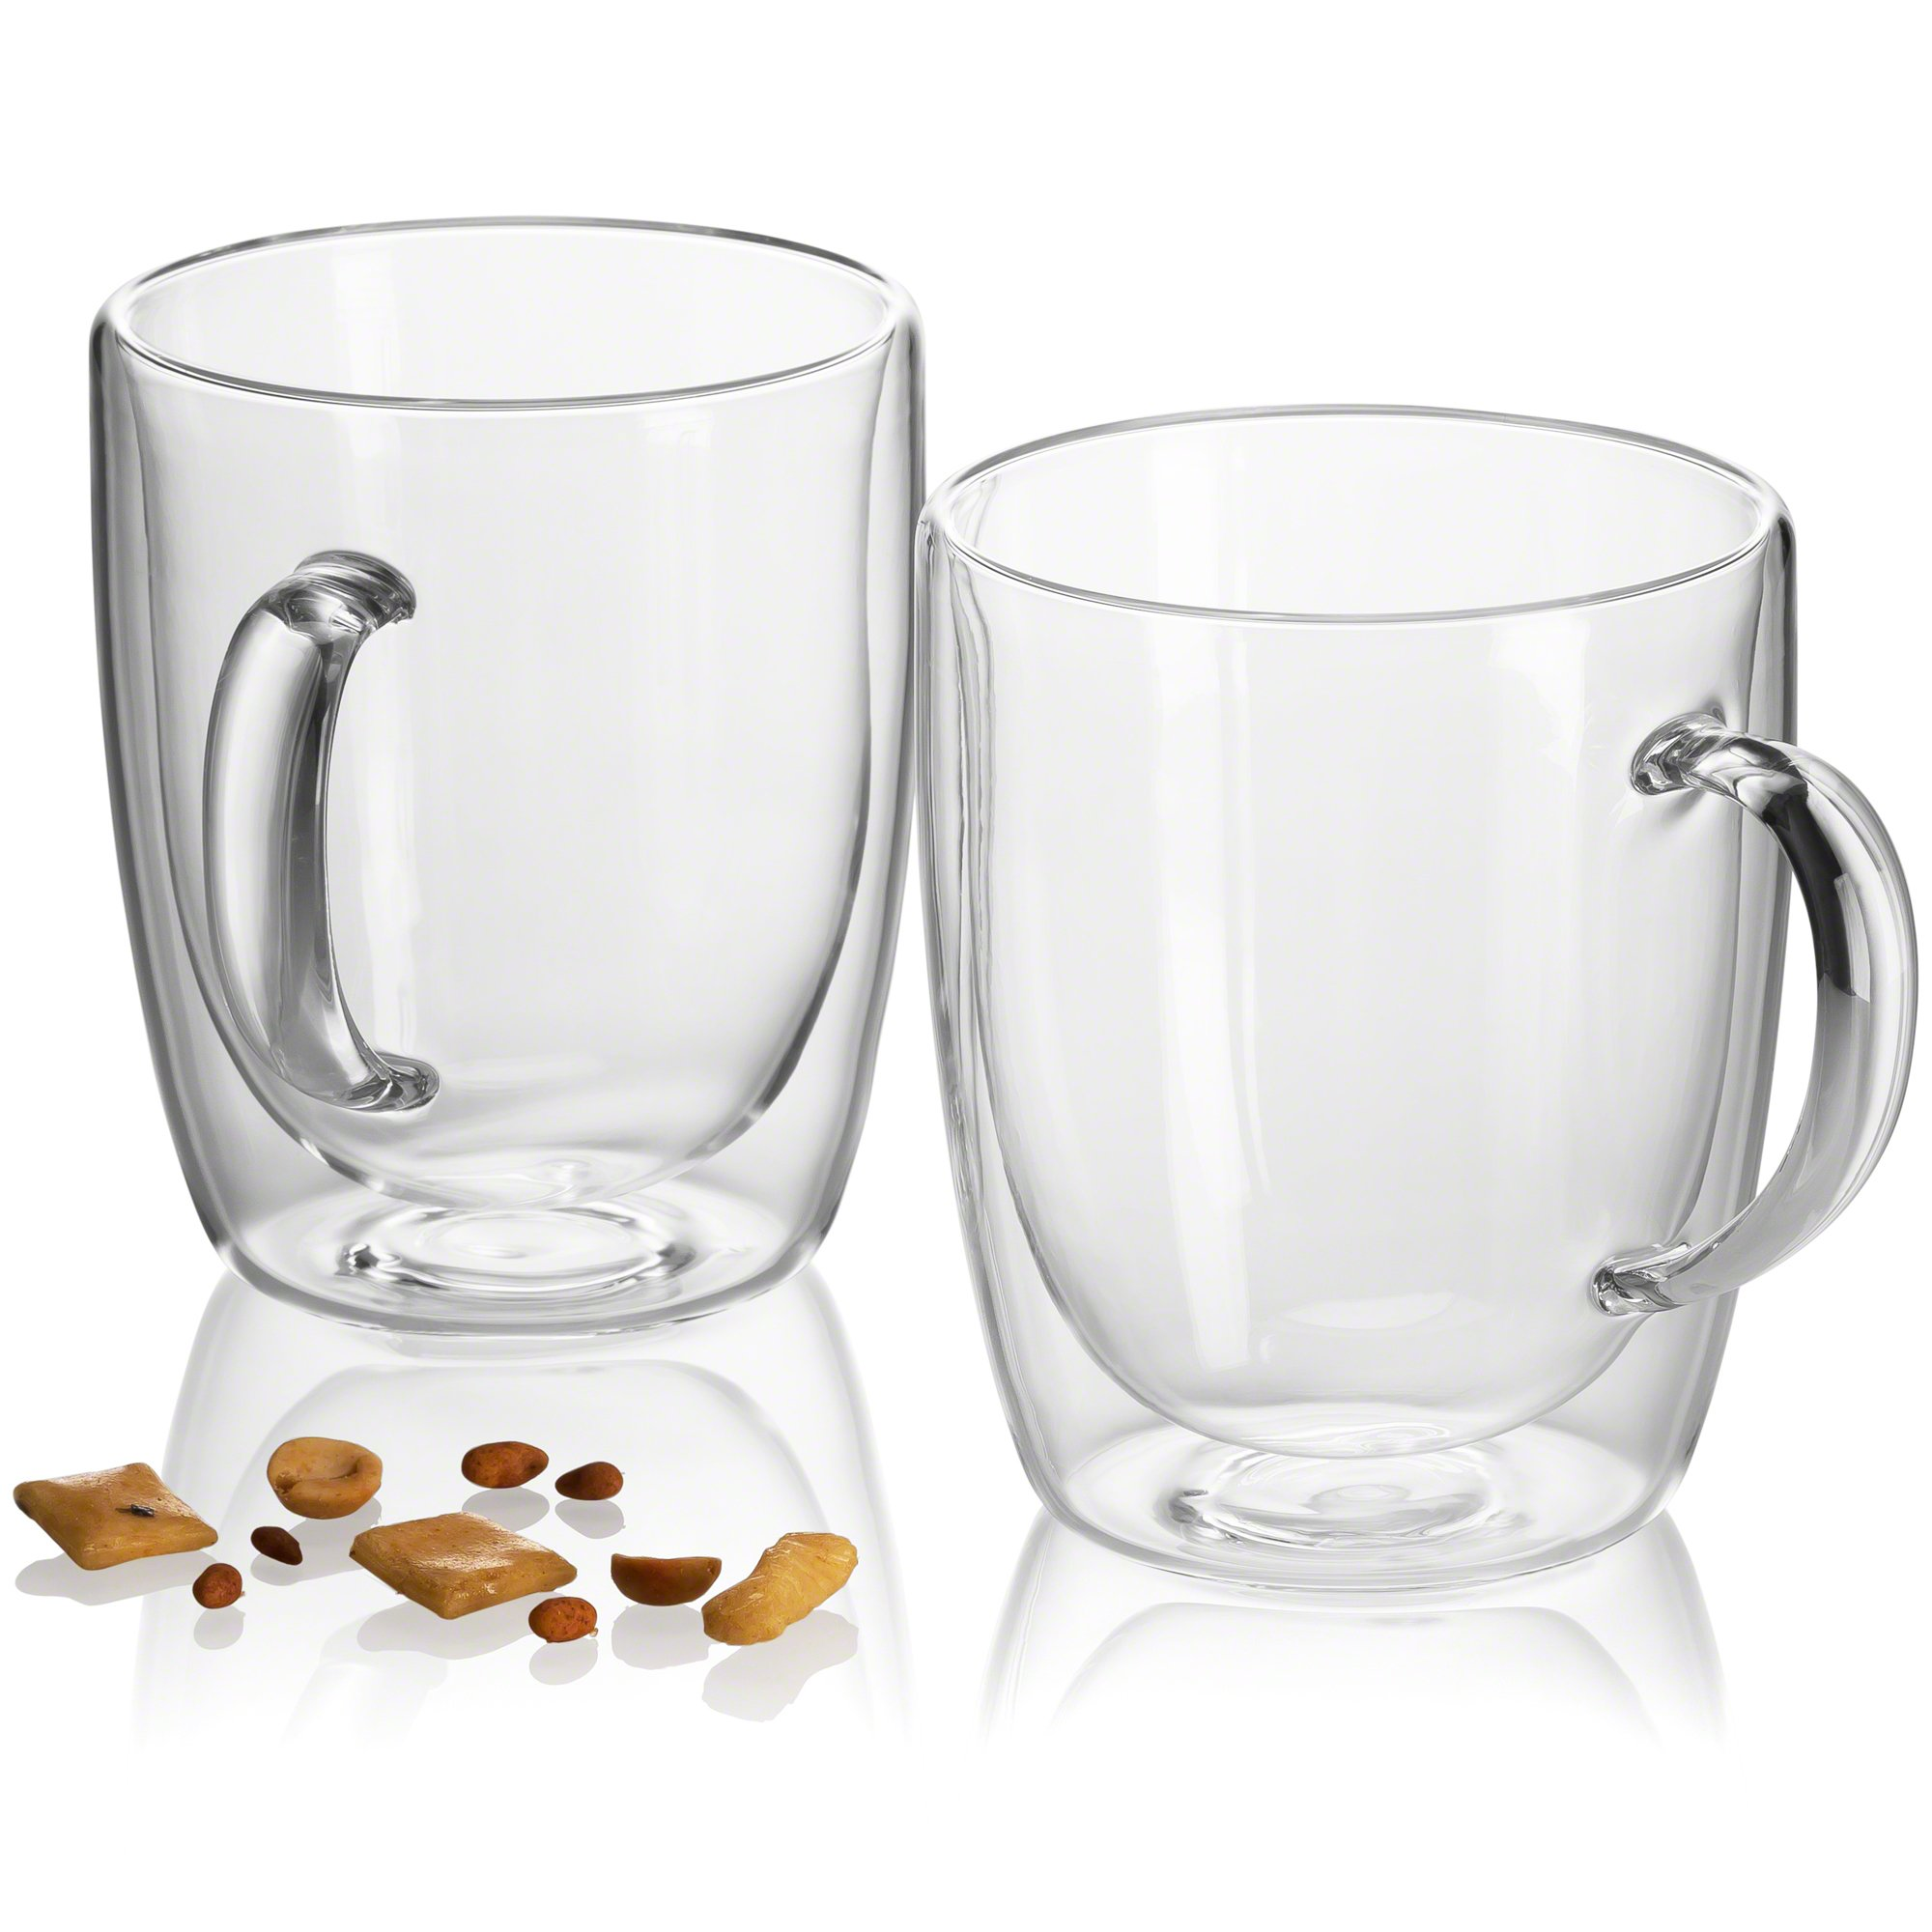 Pint Glasses - Double Wall Glass - Beer Mugs for Freezer - Dishwasher Safe - 18 oz (Set of 2) by JECOBI (Image #6)